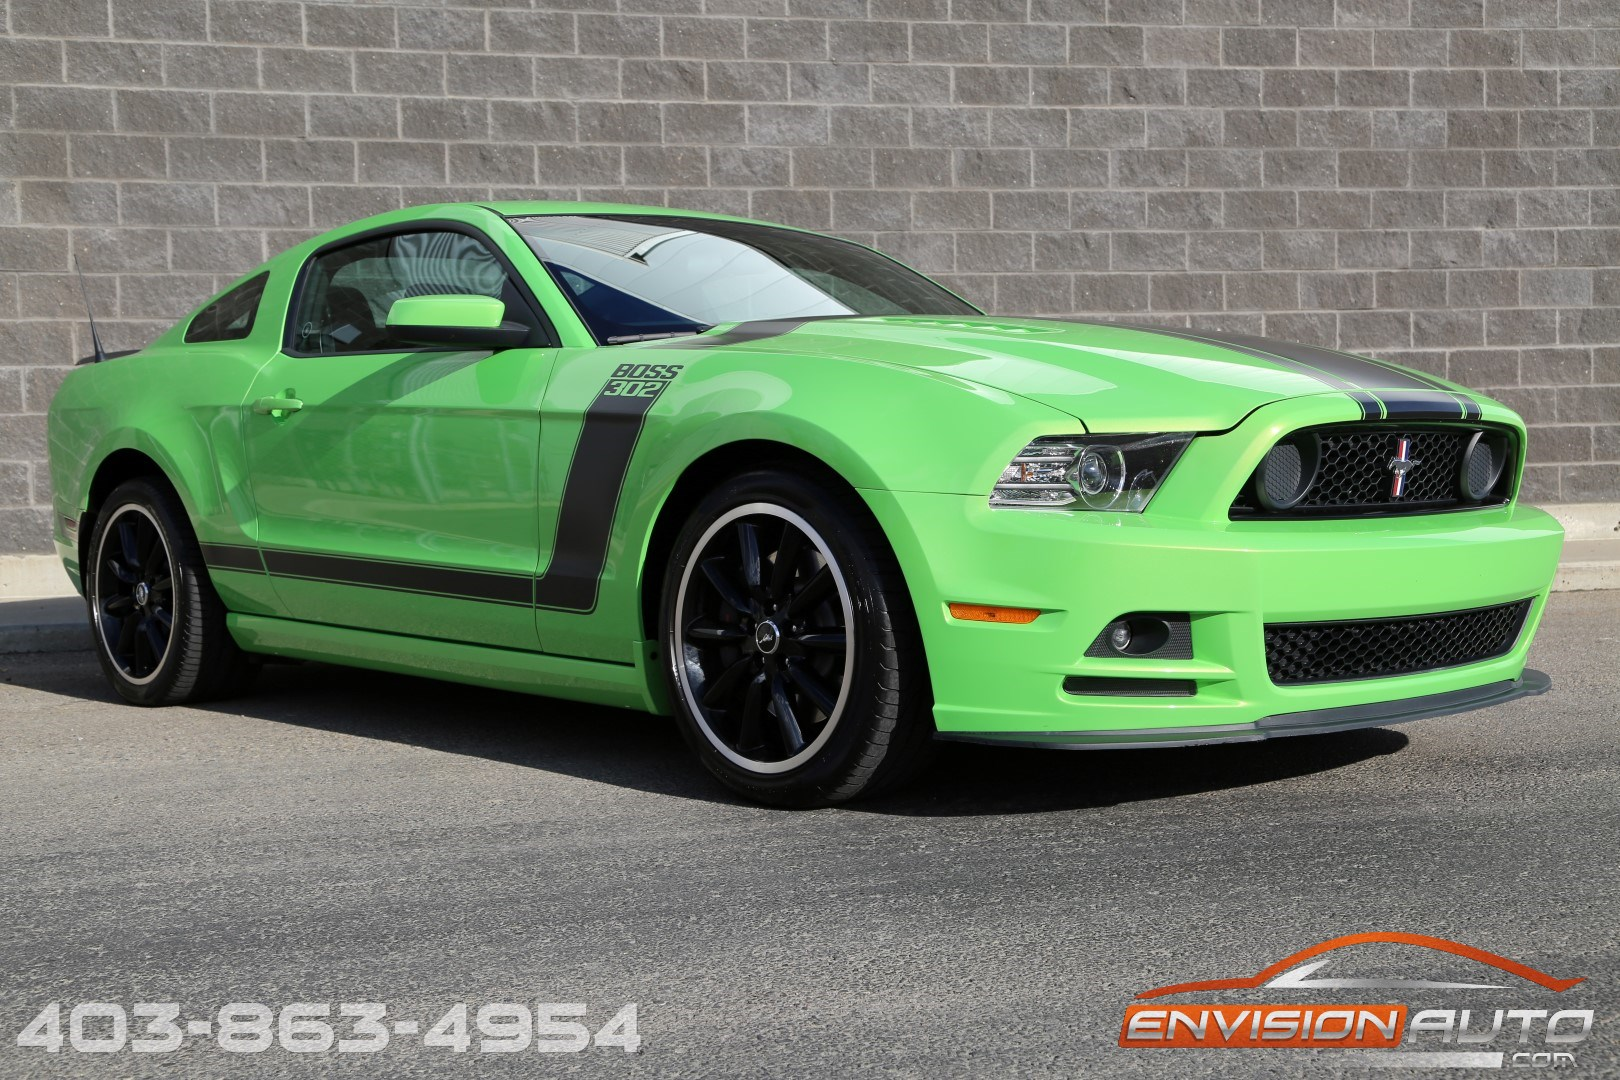 2013 Ford Mustang Boss 302 Red Track Key Enabled Envision Auto